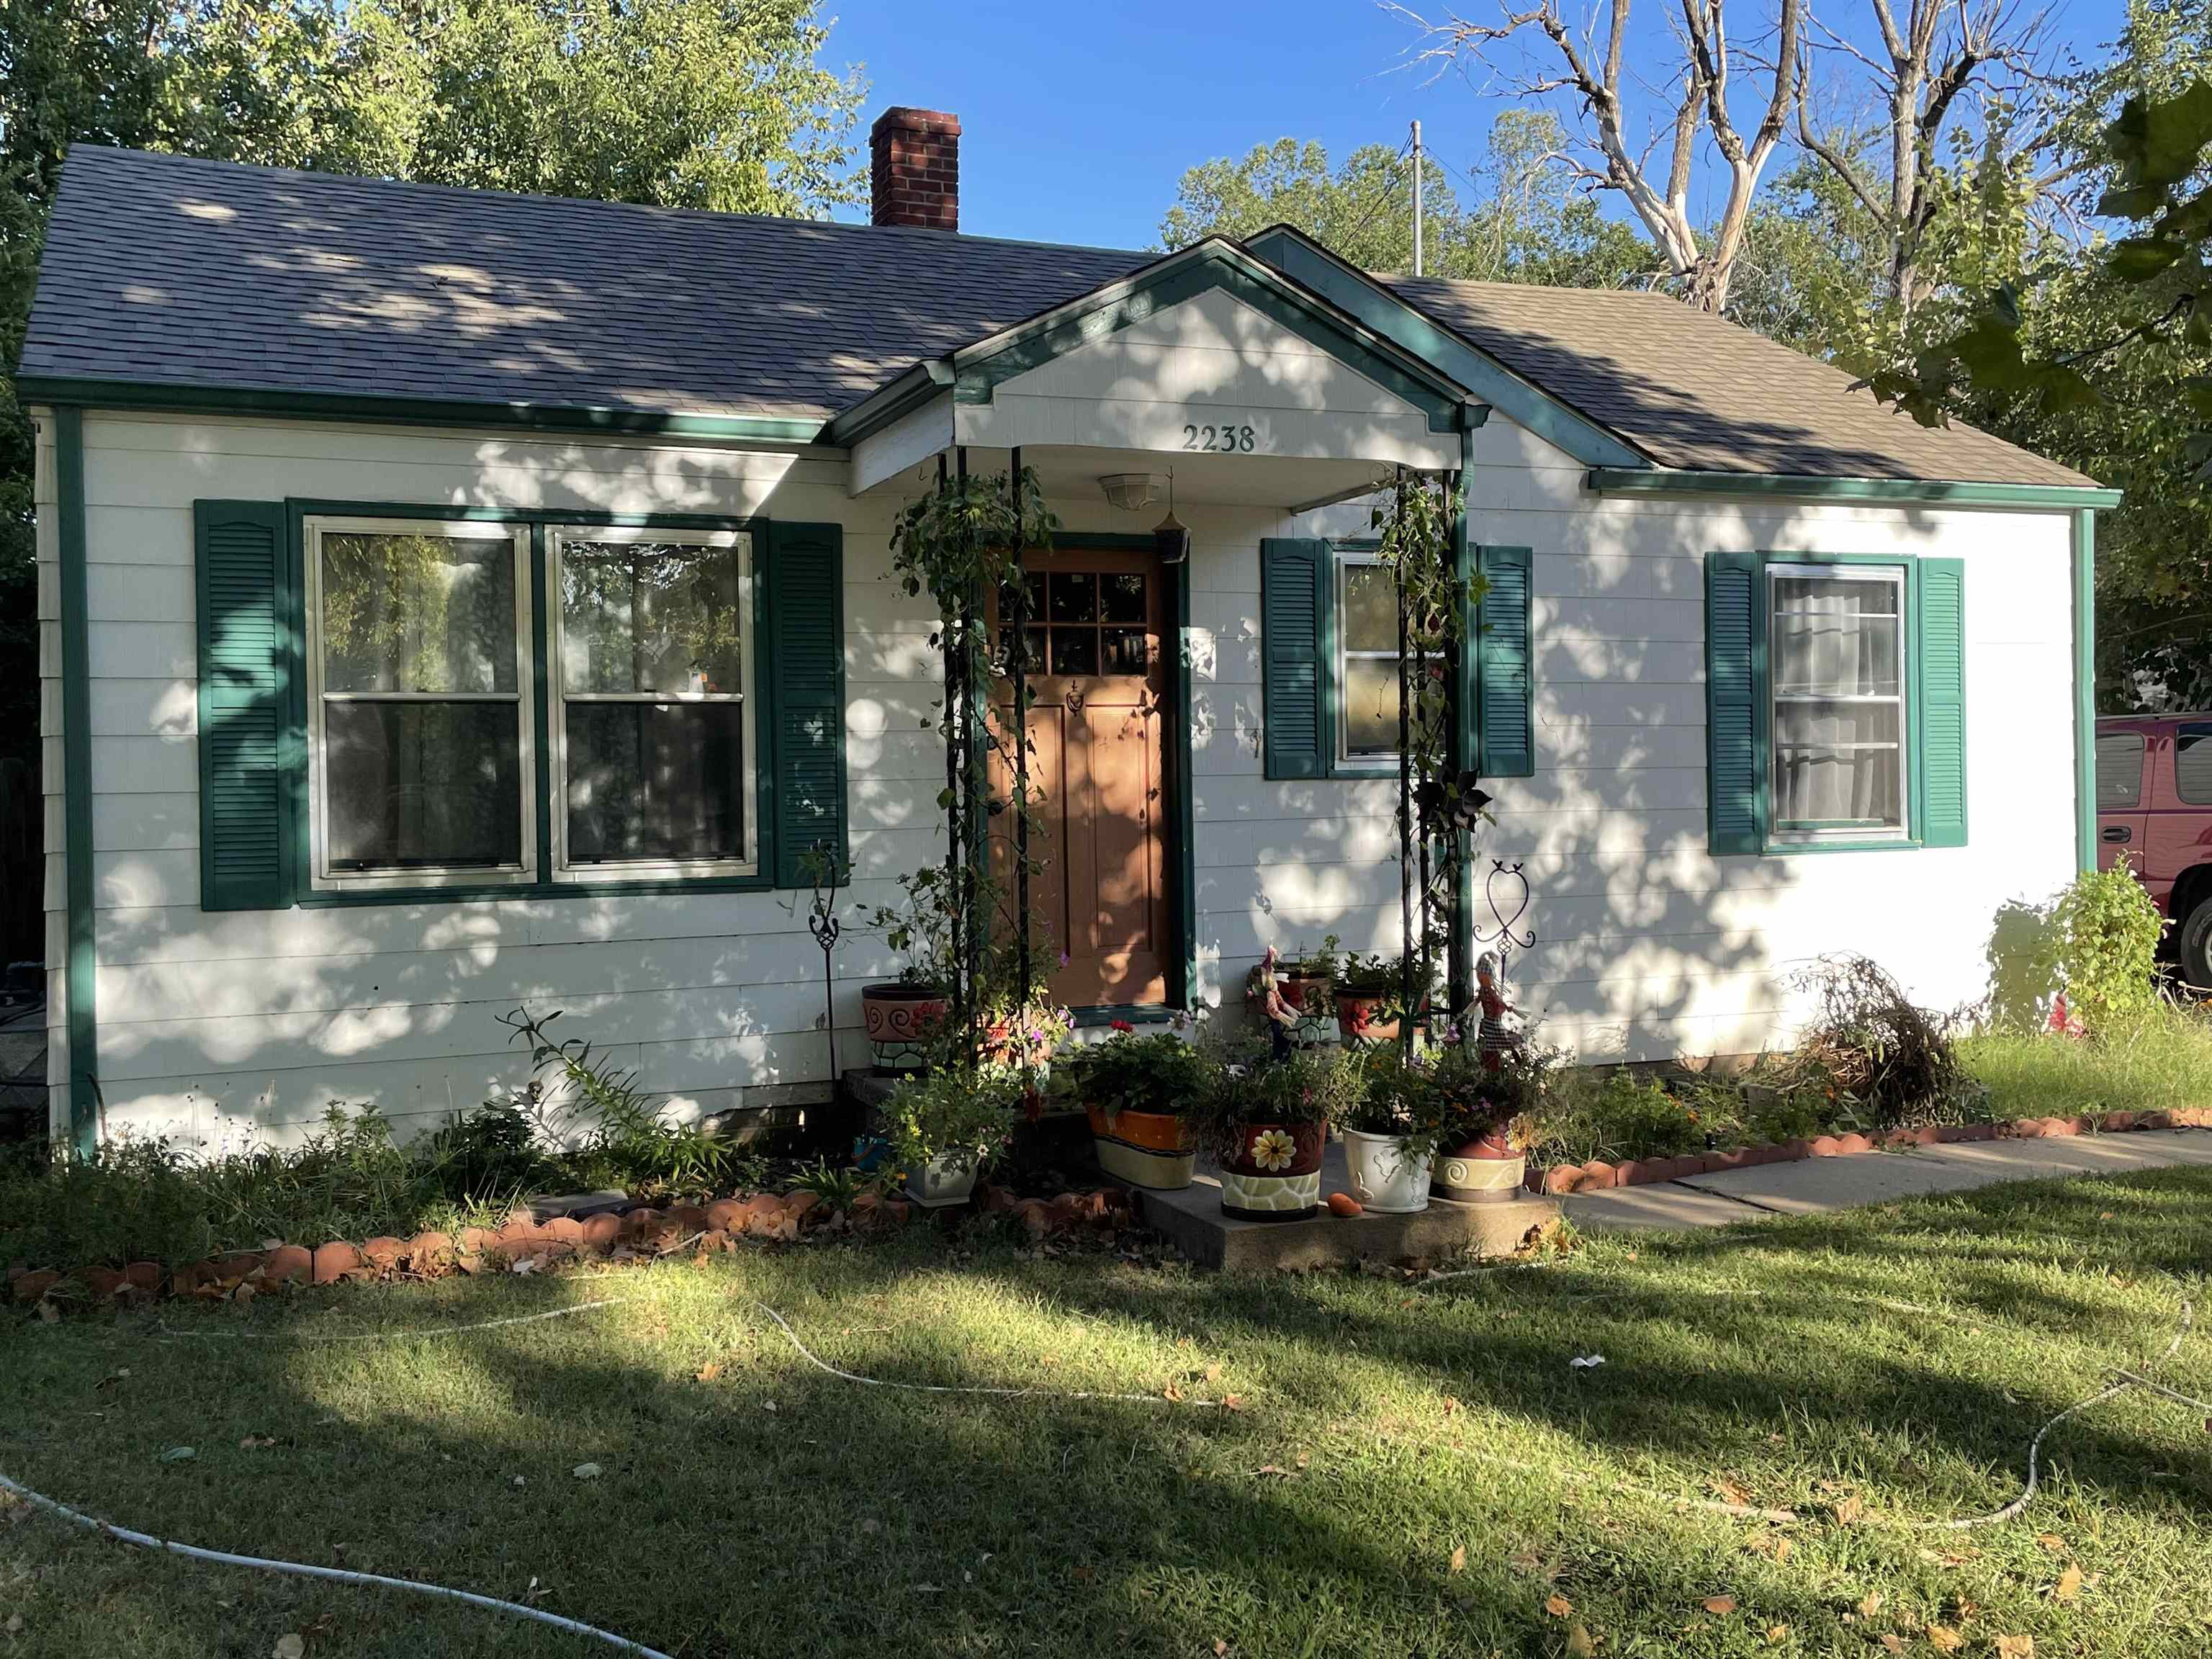 Great 3 bedroom home that would make a great addition to your portfolio, or as your new home.